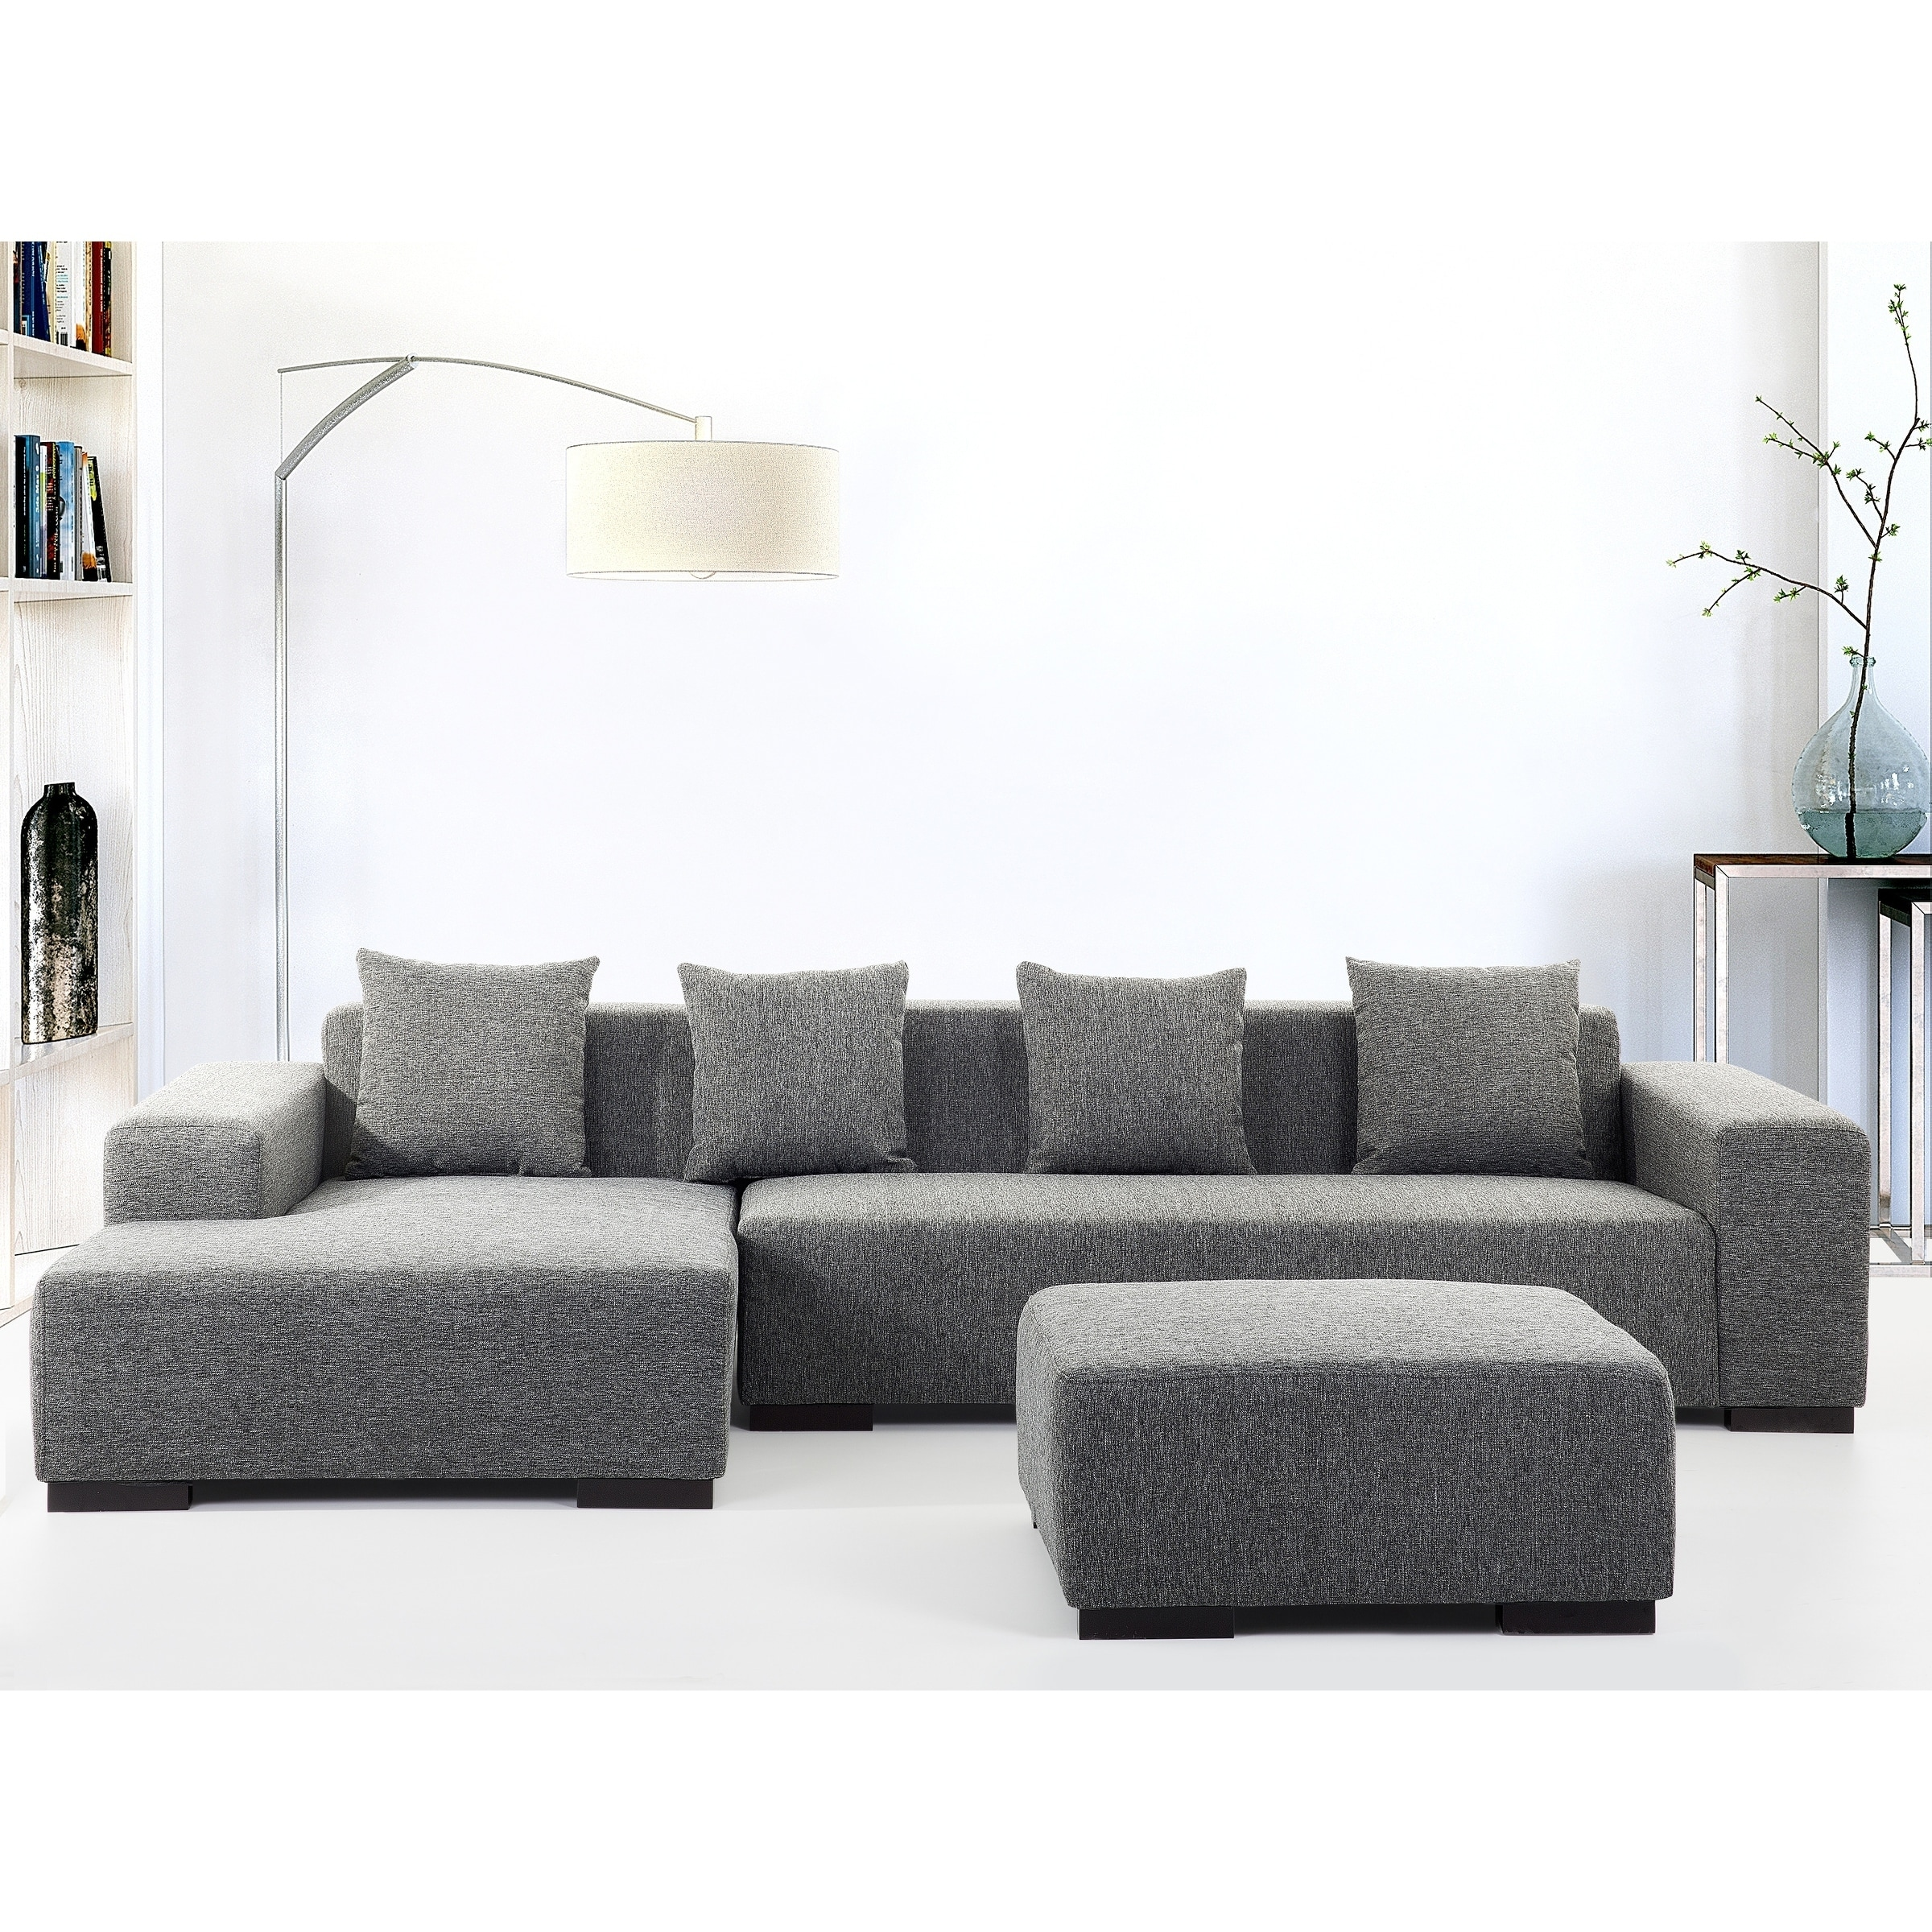 radius classic product fabric silver chesterfield sectional cococohome cannes gray corner x sage